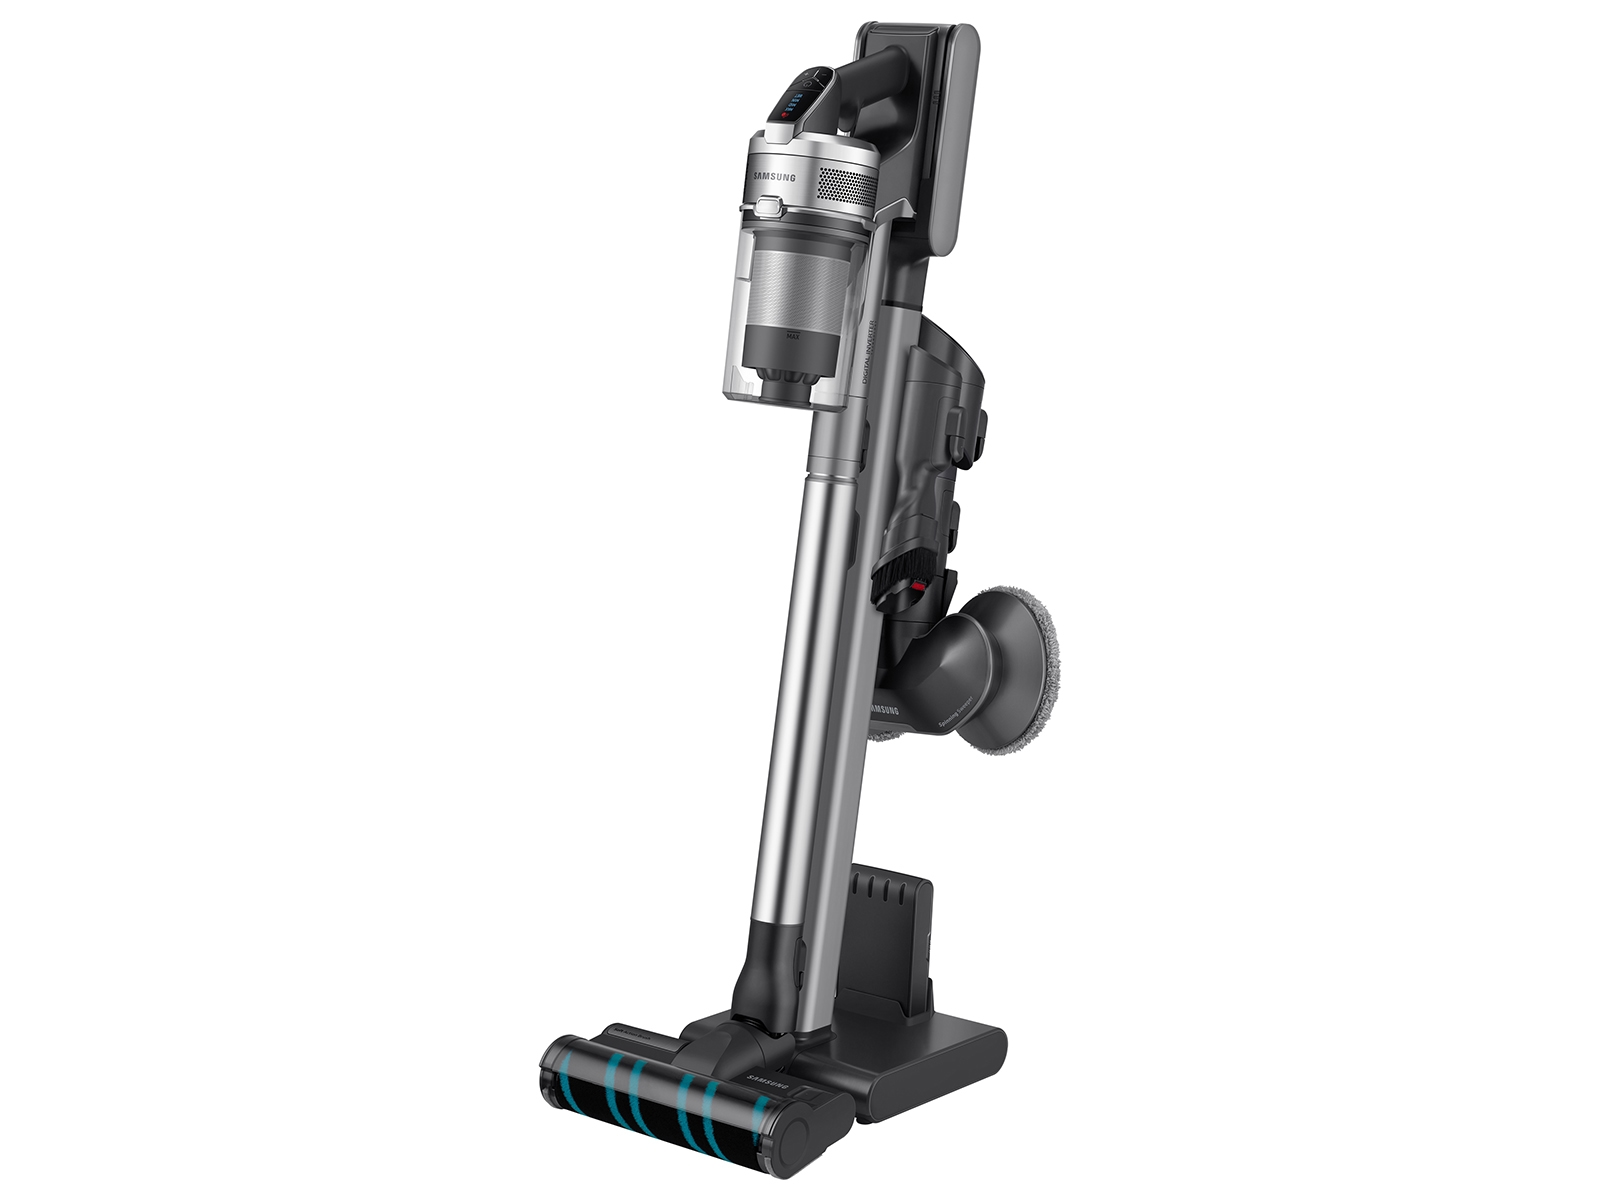 Jet VS90 Stick Vacuum with Spinning Sweeper in Titan ChroMetal